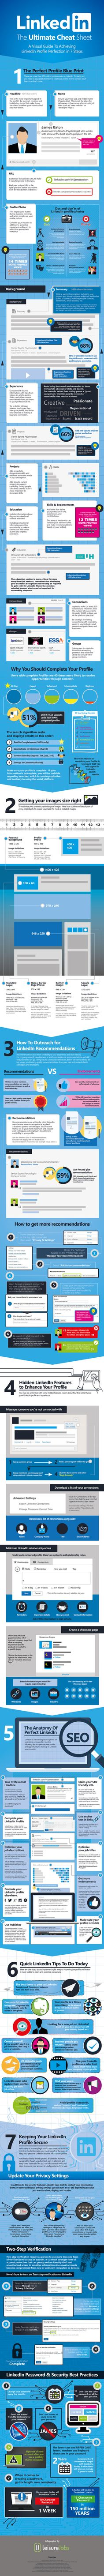 "How to Craft the Perfect LinkedIn Profile: A Comprehensive Guide - <a class=""pintag"" href=""/explore/Infographic/"" title=""#Infographic explore Pinterest"">#Infographic</a>"